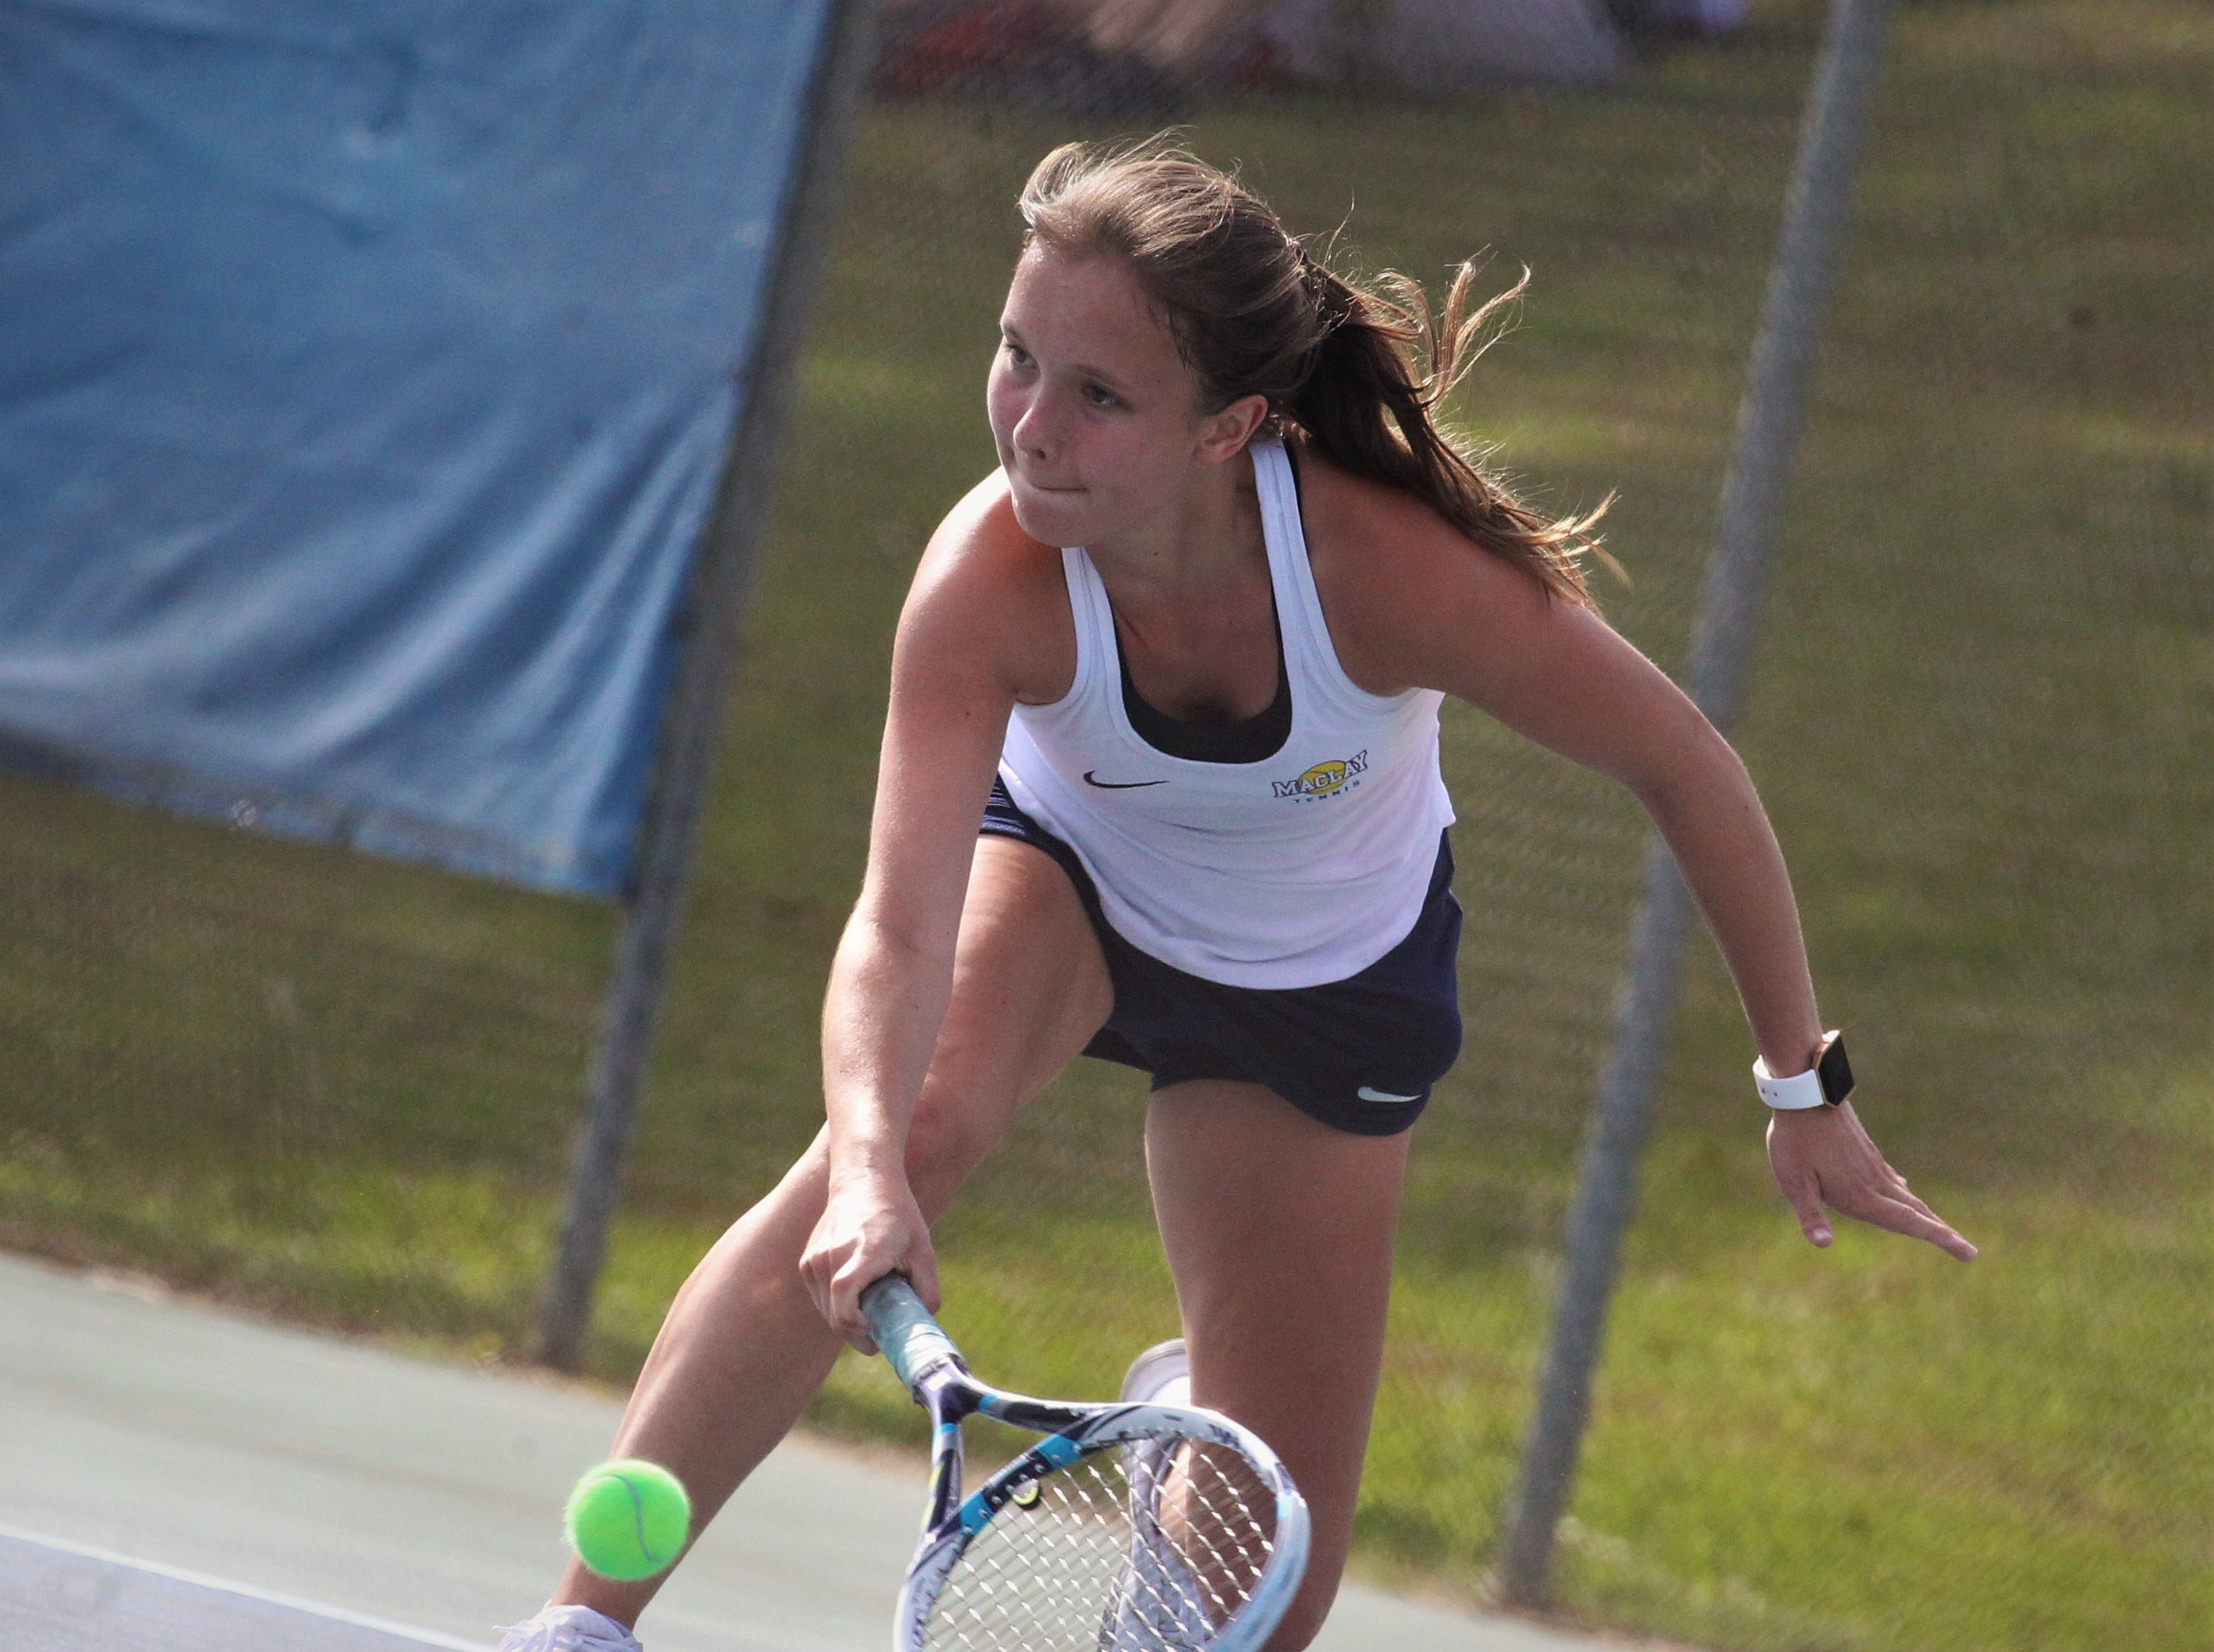 Maclay junior Rachael Stockel plays during the boys and girls tennis city tournament at Tom Brown Park on March 13, 2019.